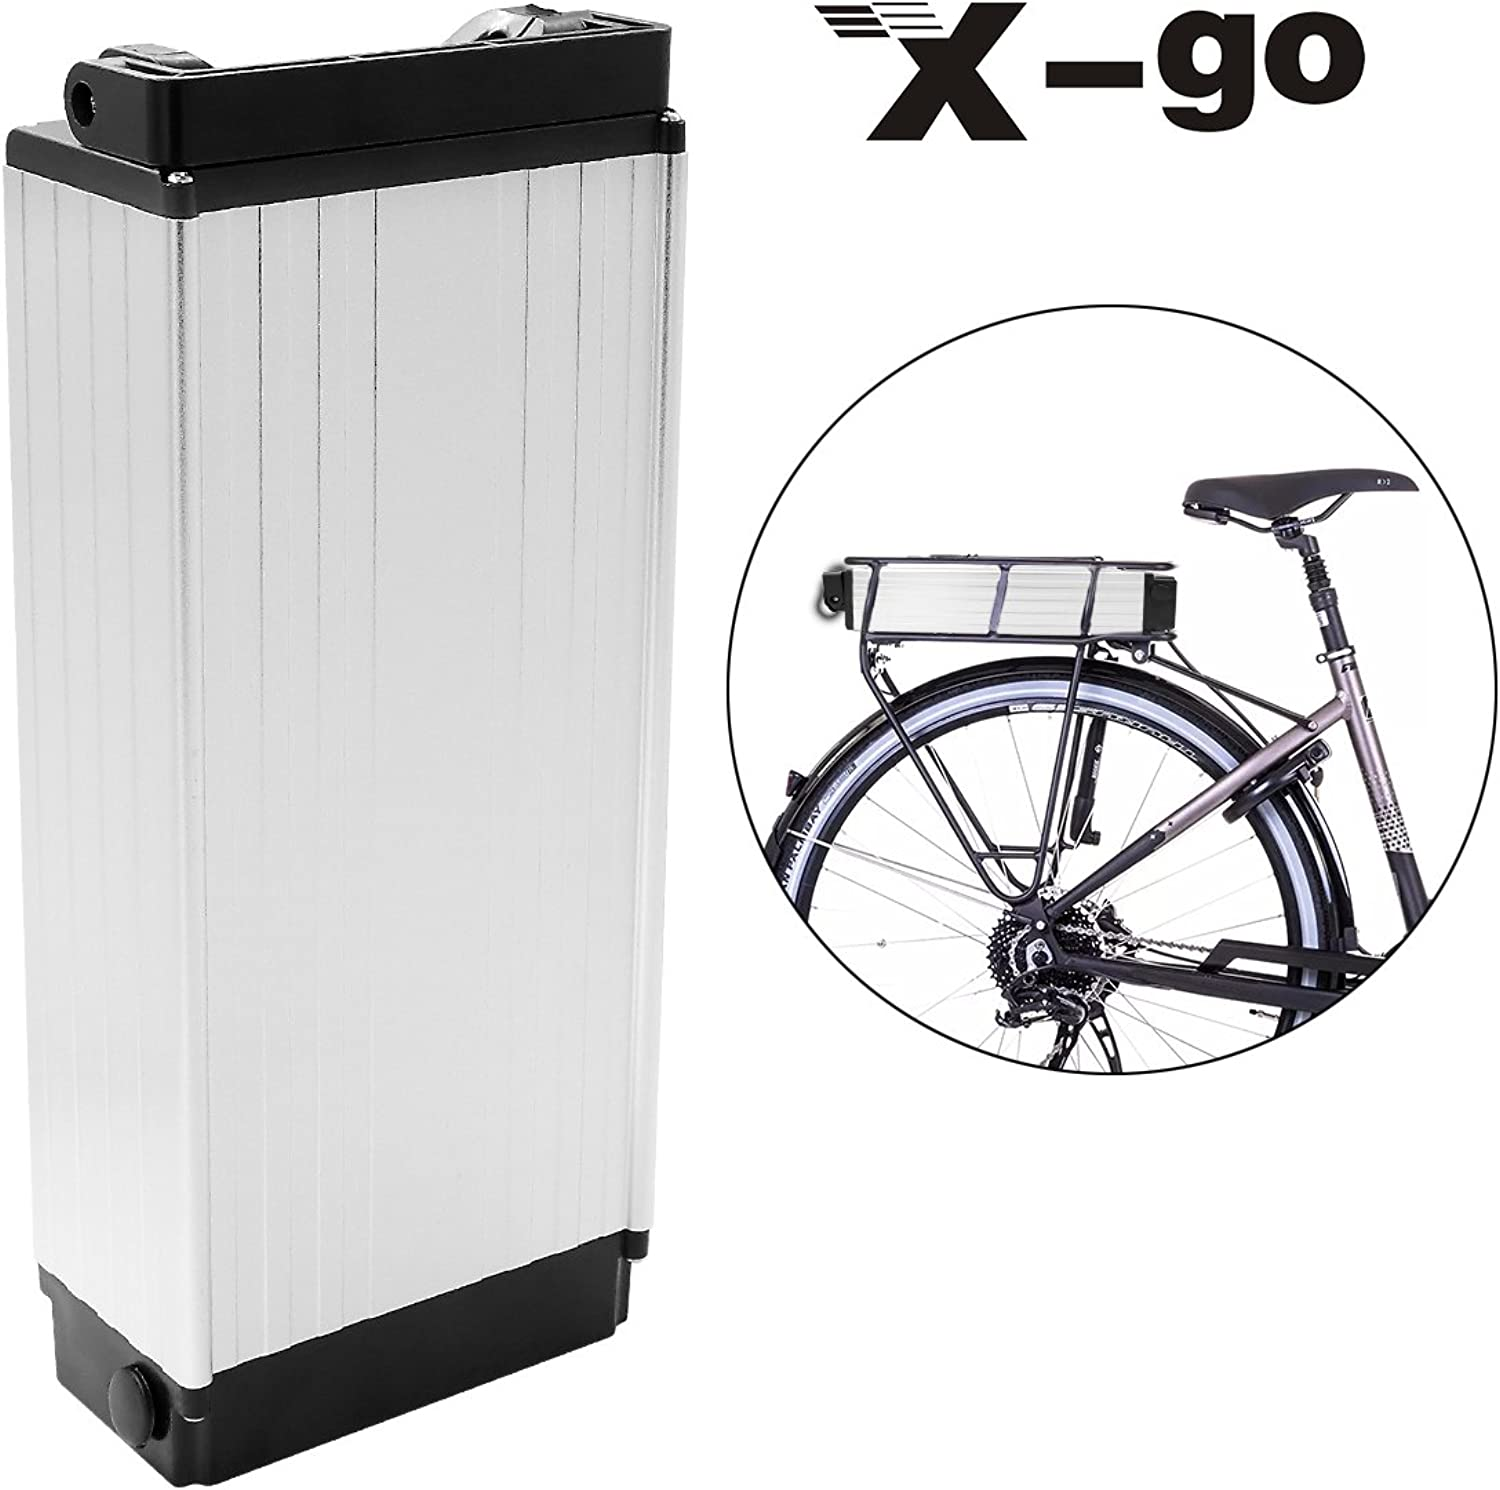 Xgo 48V 20Ah 1000W Cell Holder Back Carrier Liion Battery for EBike Electric Bicycle (No Lantern)